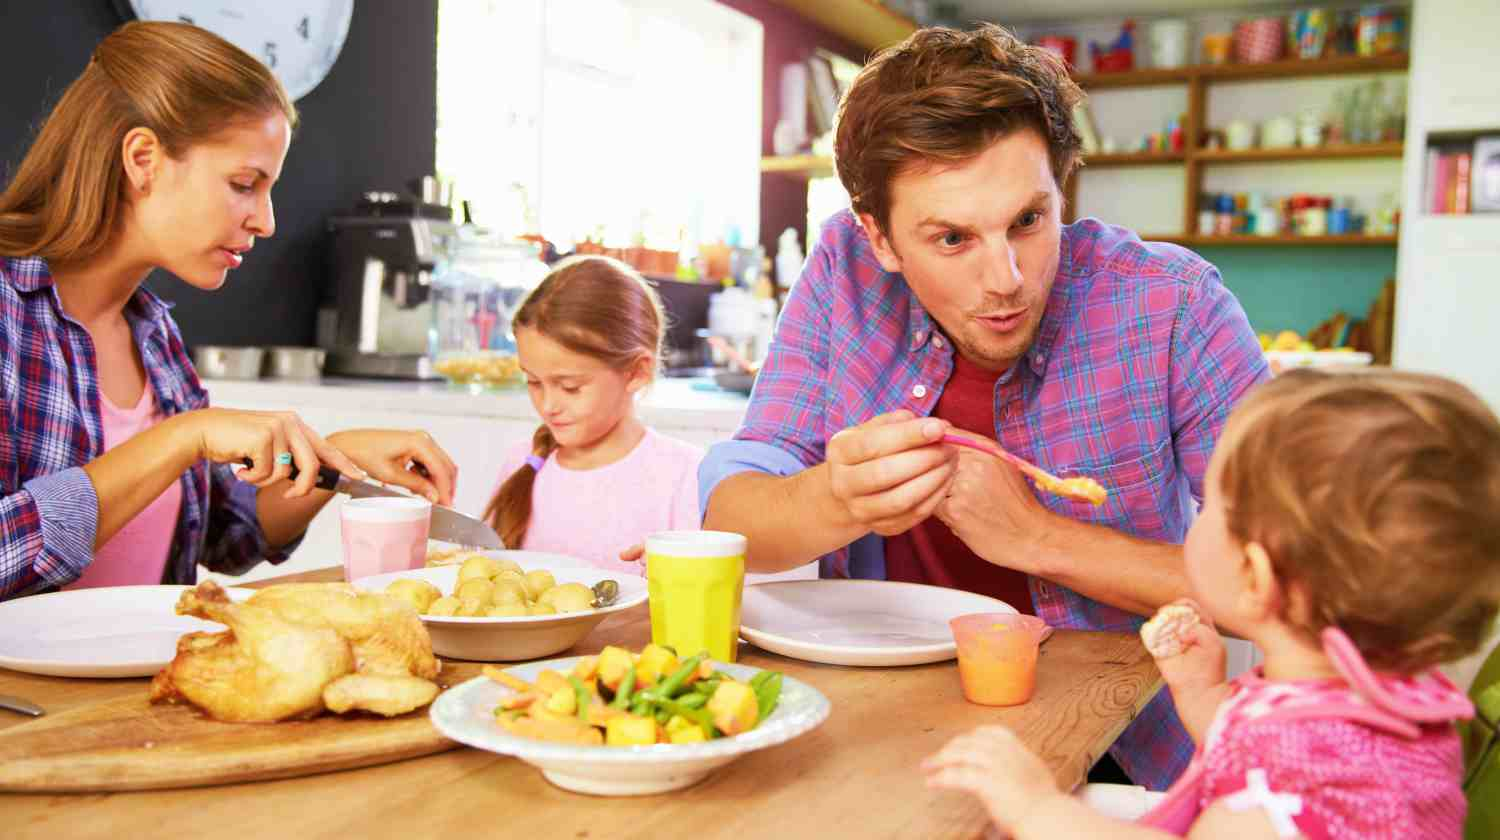 Feature   Family Eating Together   Healthy Food Serving Size For Toddlers And Kids   serving size guide